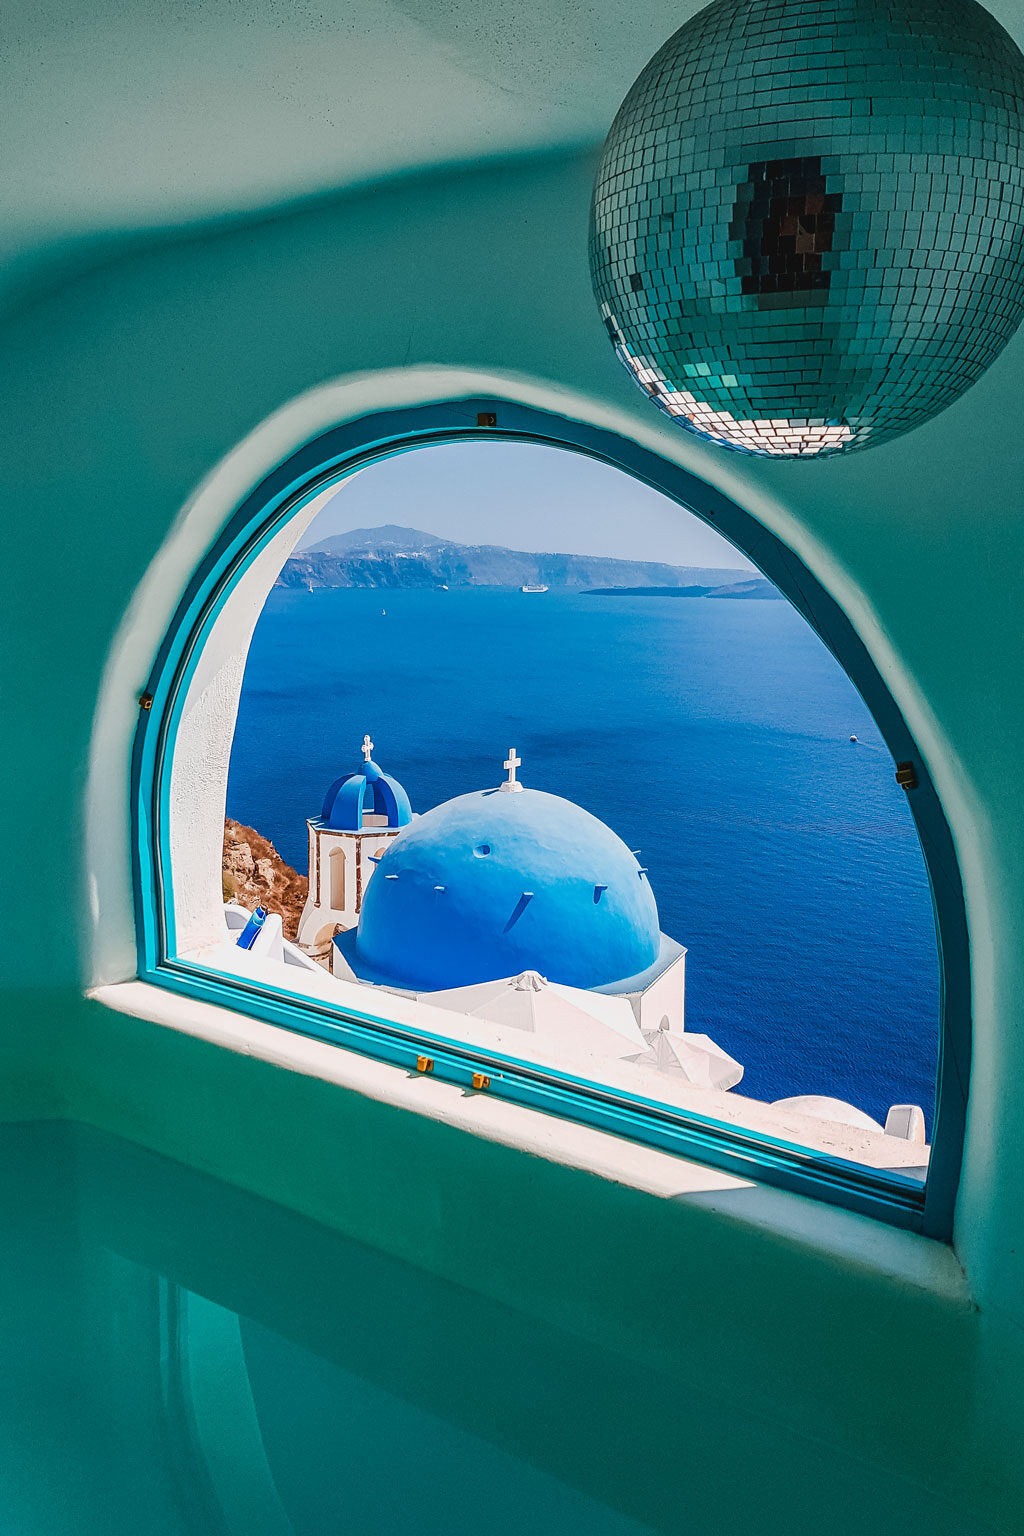 Blue Dome Churches Seen from Indoor Pool Window